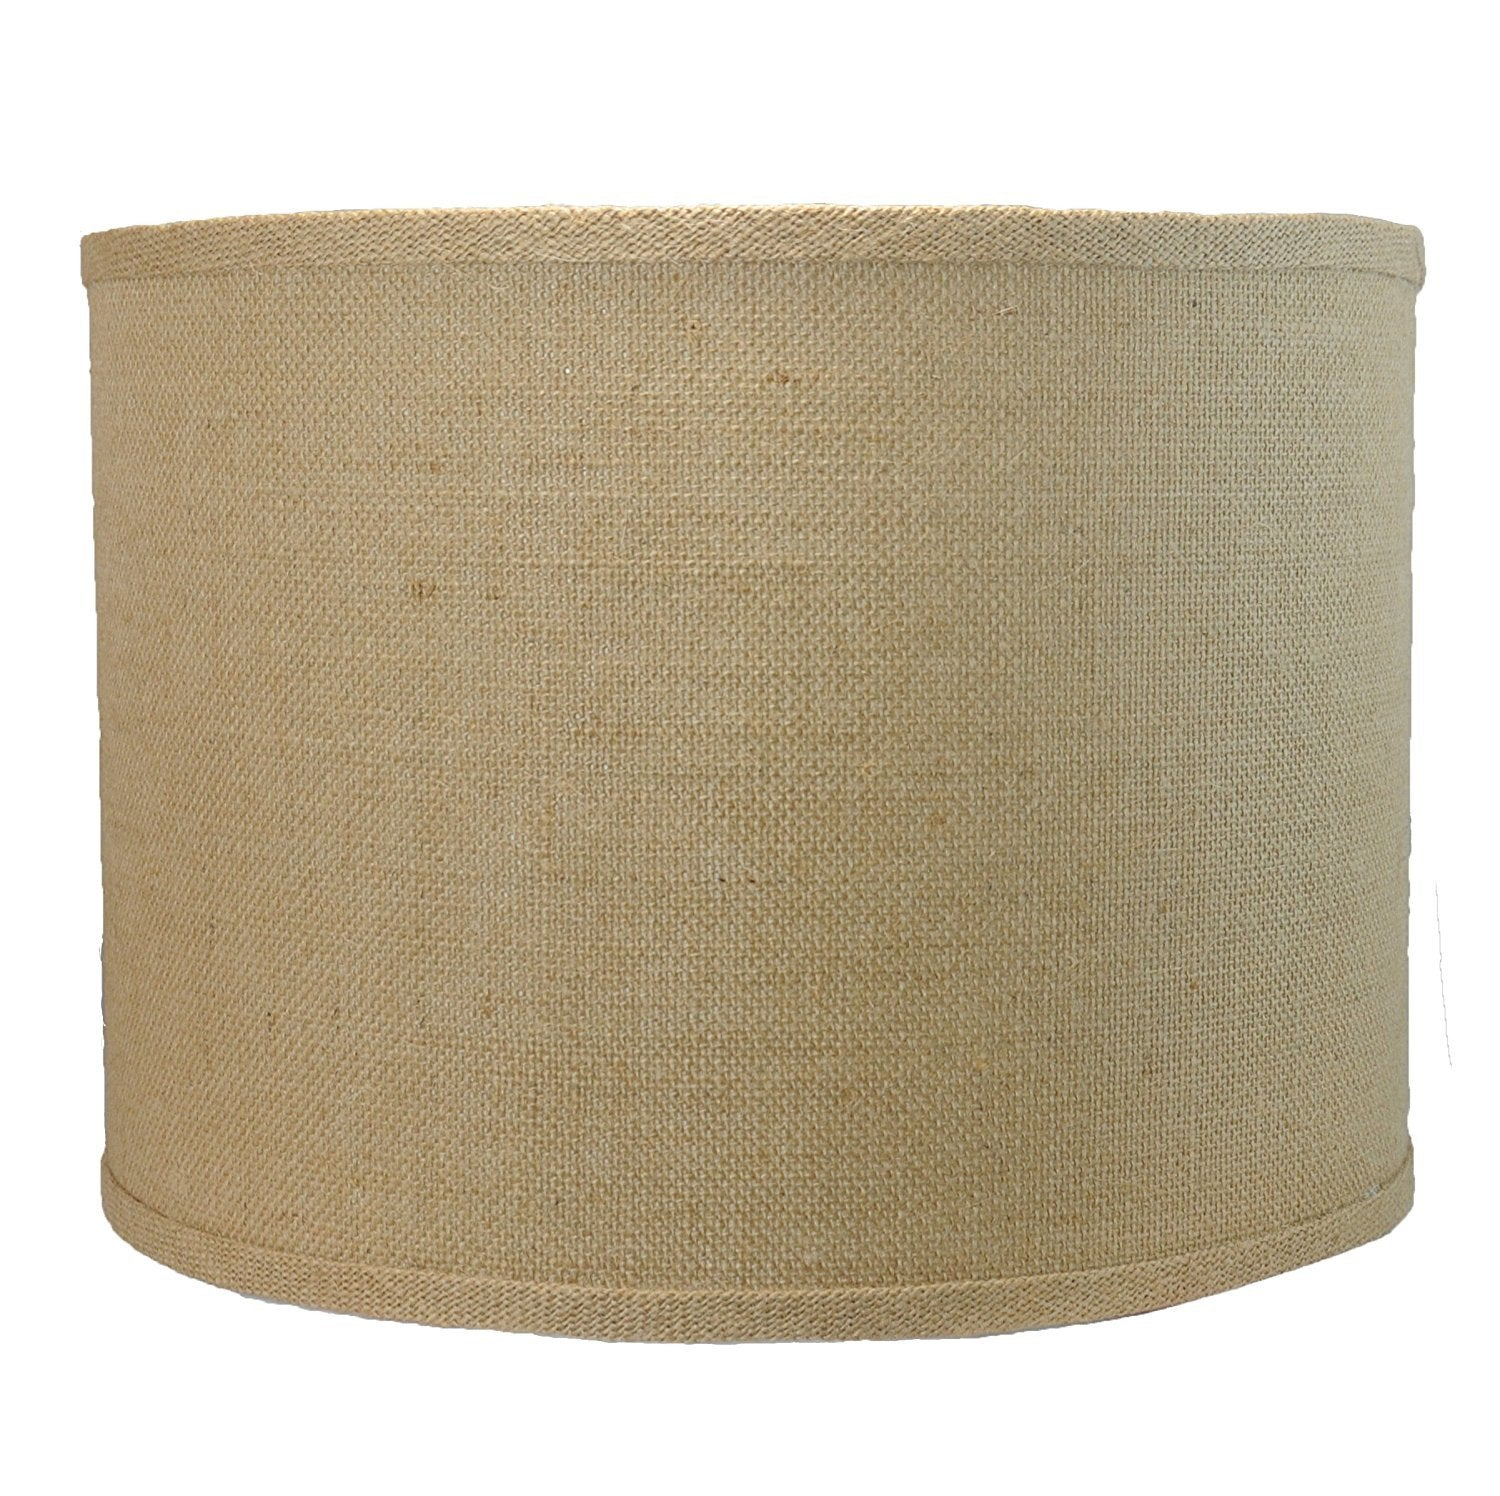 "Burlap Drum Lamp Shade, 14x14x10"", Spider"